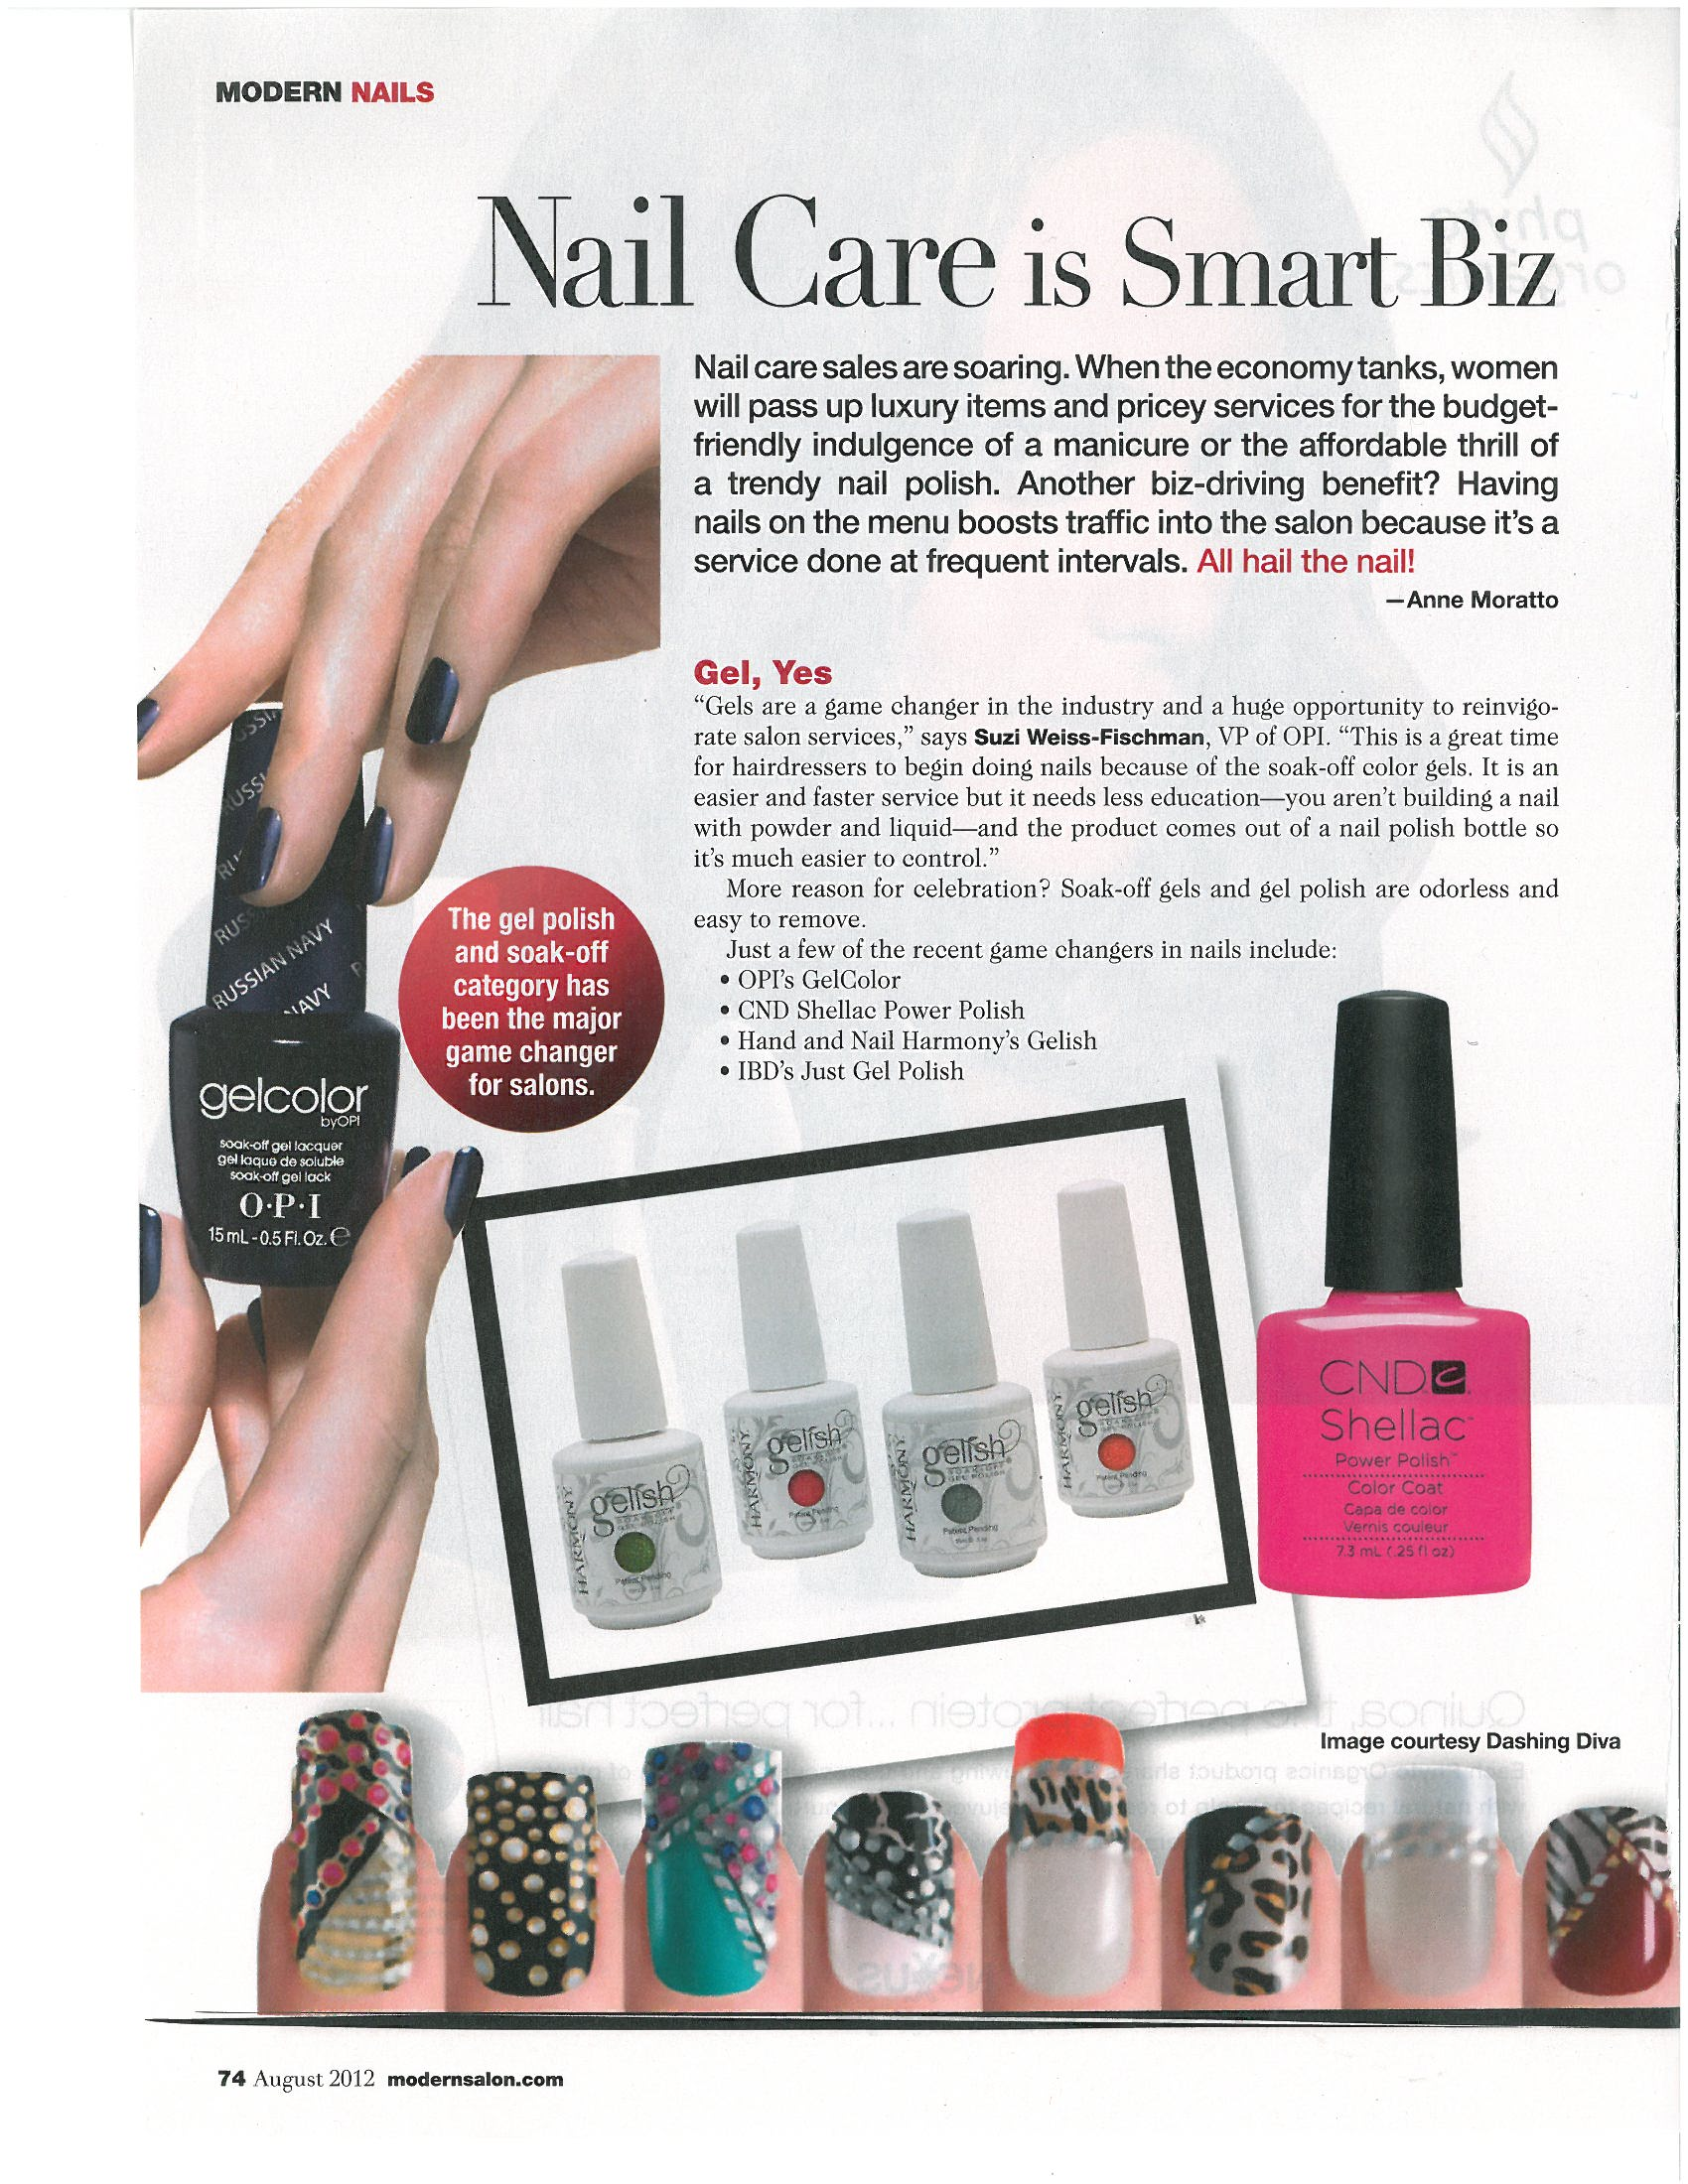 Nail Care is a Smart Biz